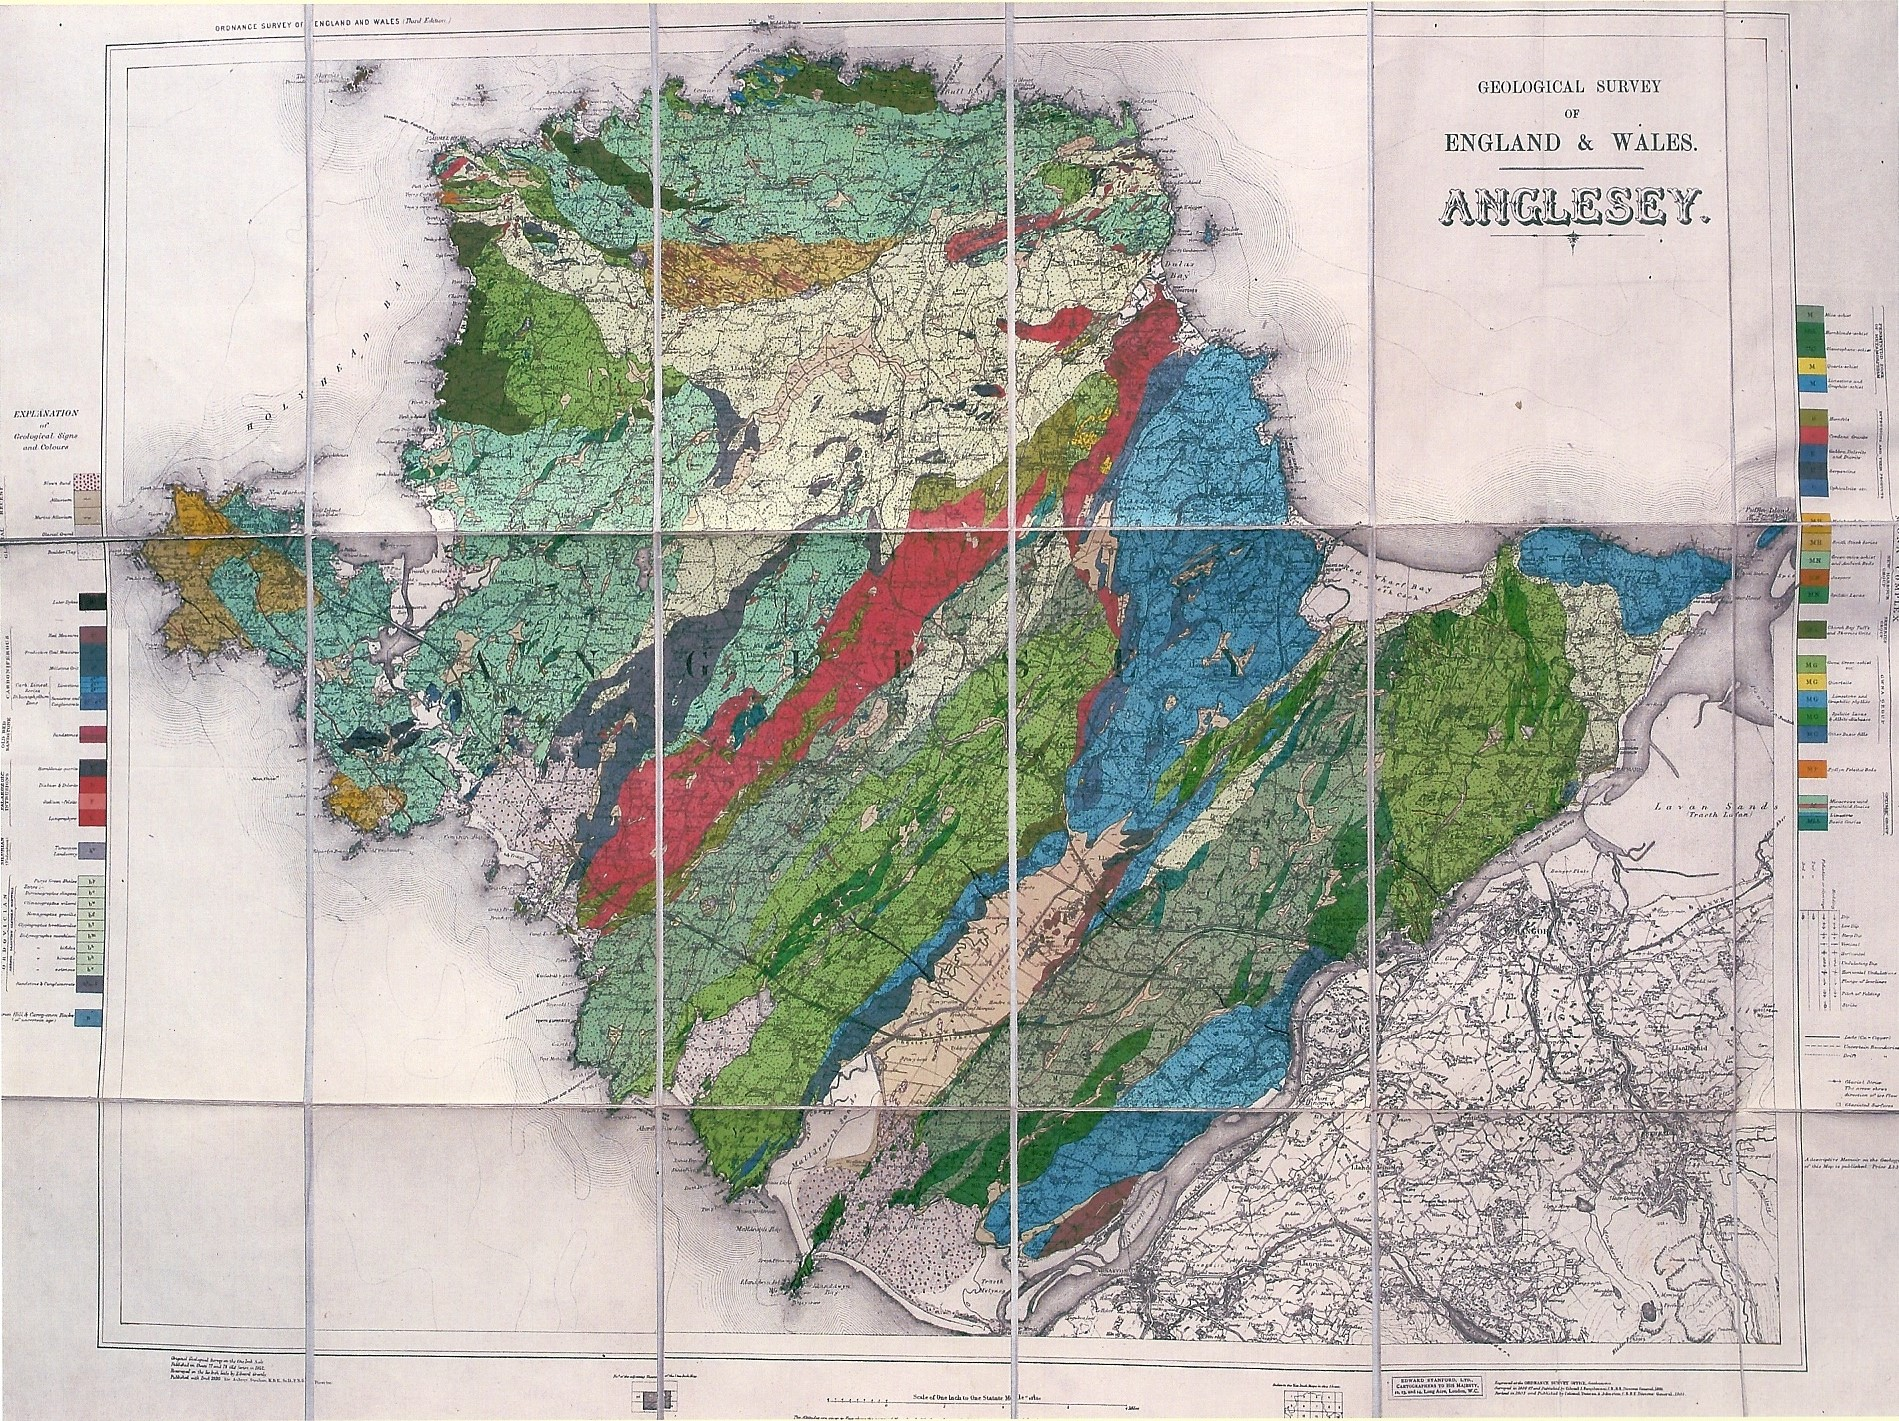 Greenly's geological map of Anglesey 1919